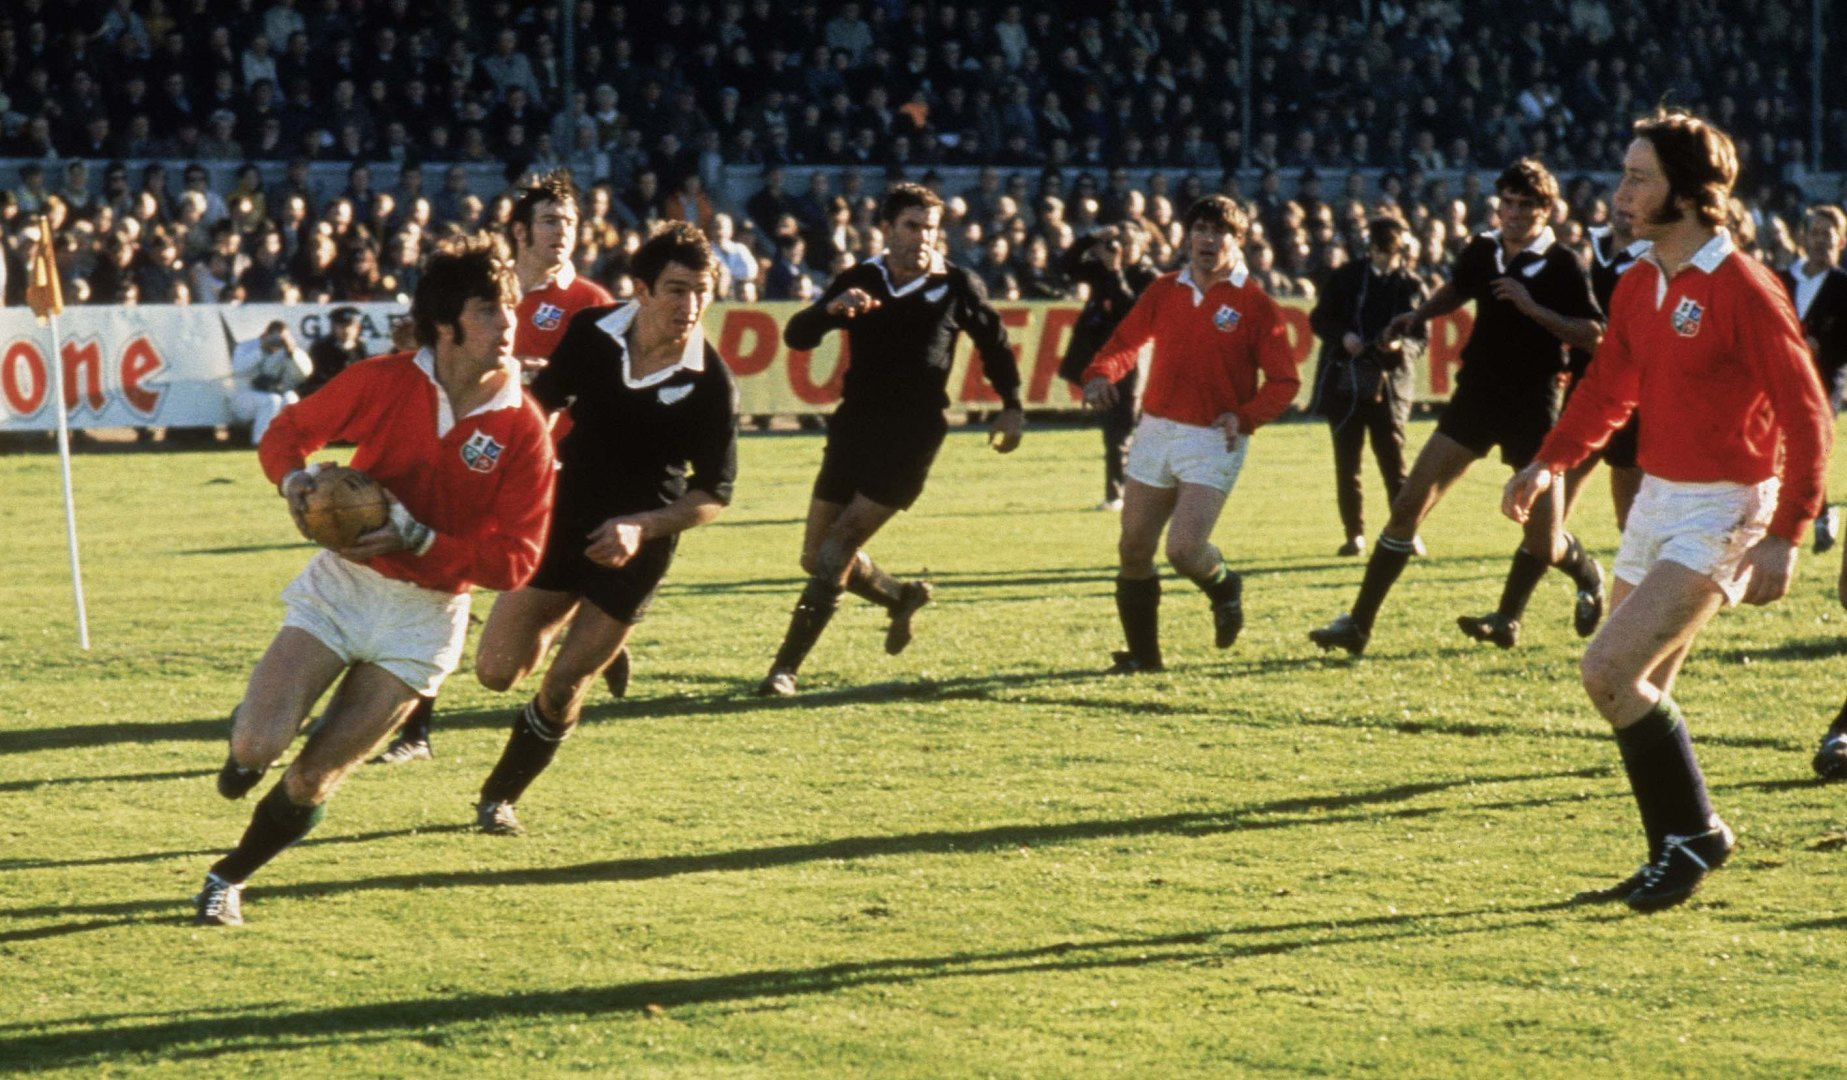 On This Day: The 1971 Lions kick off in style